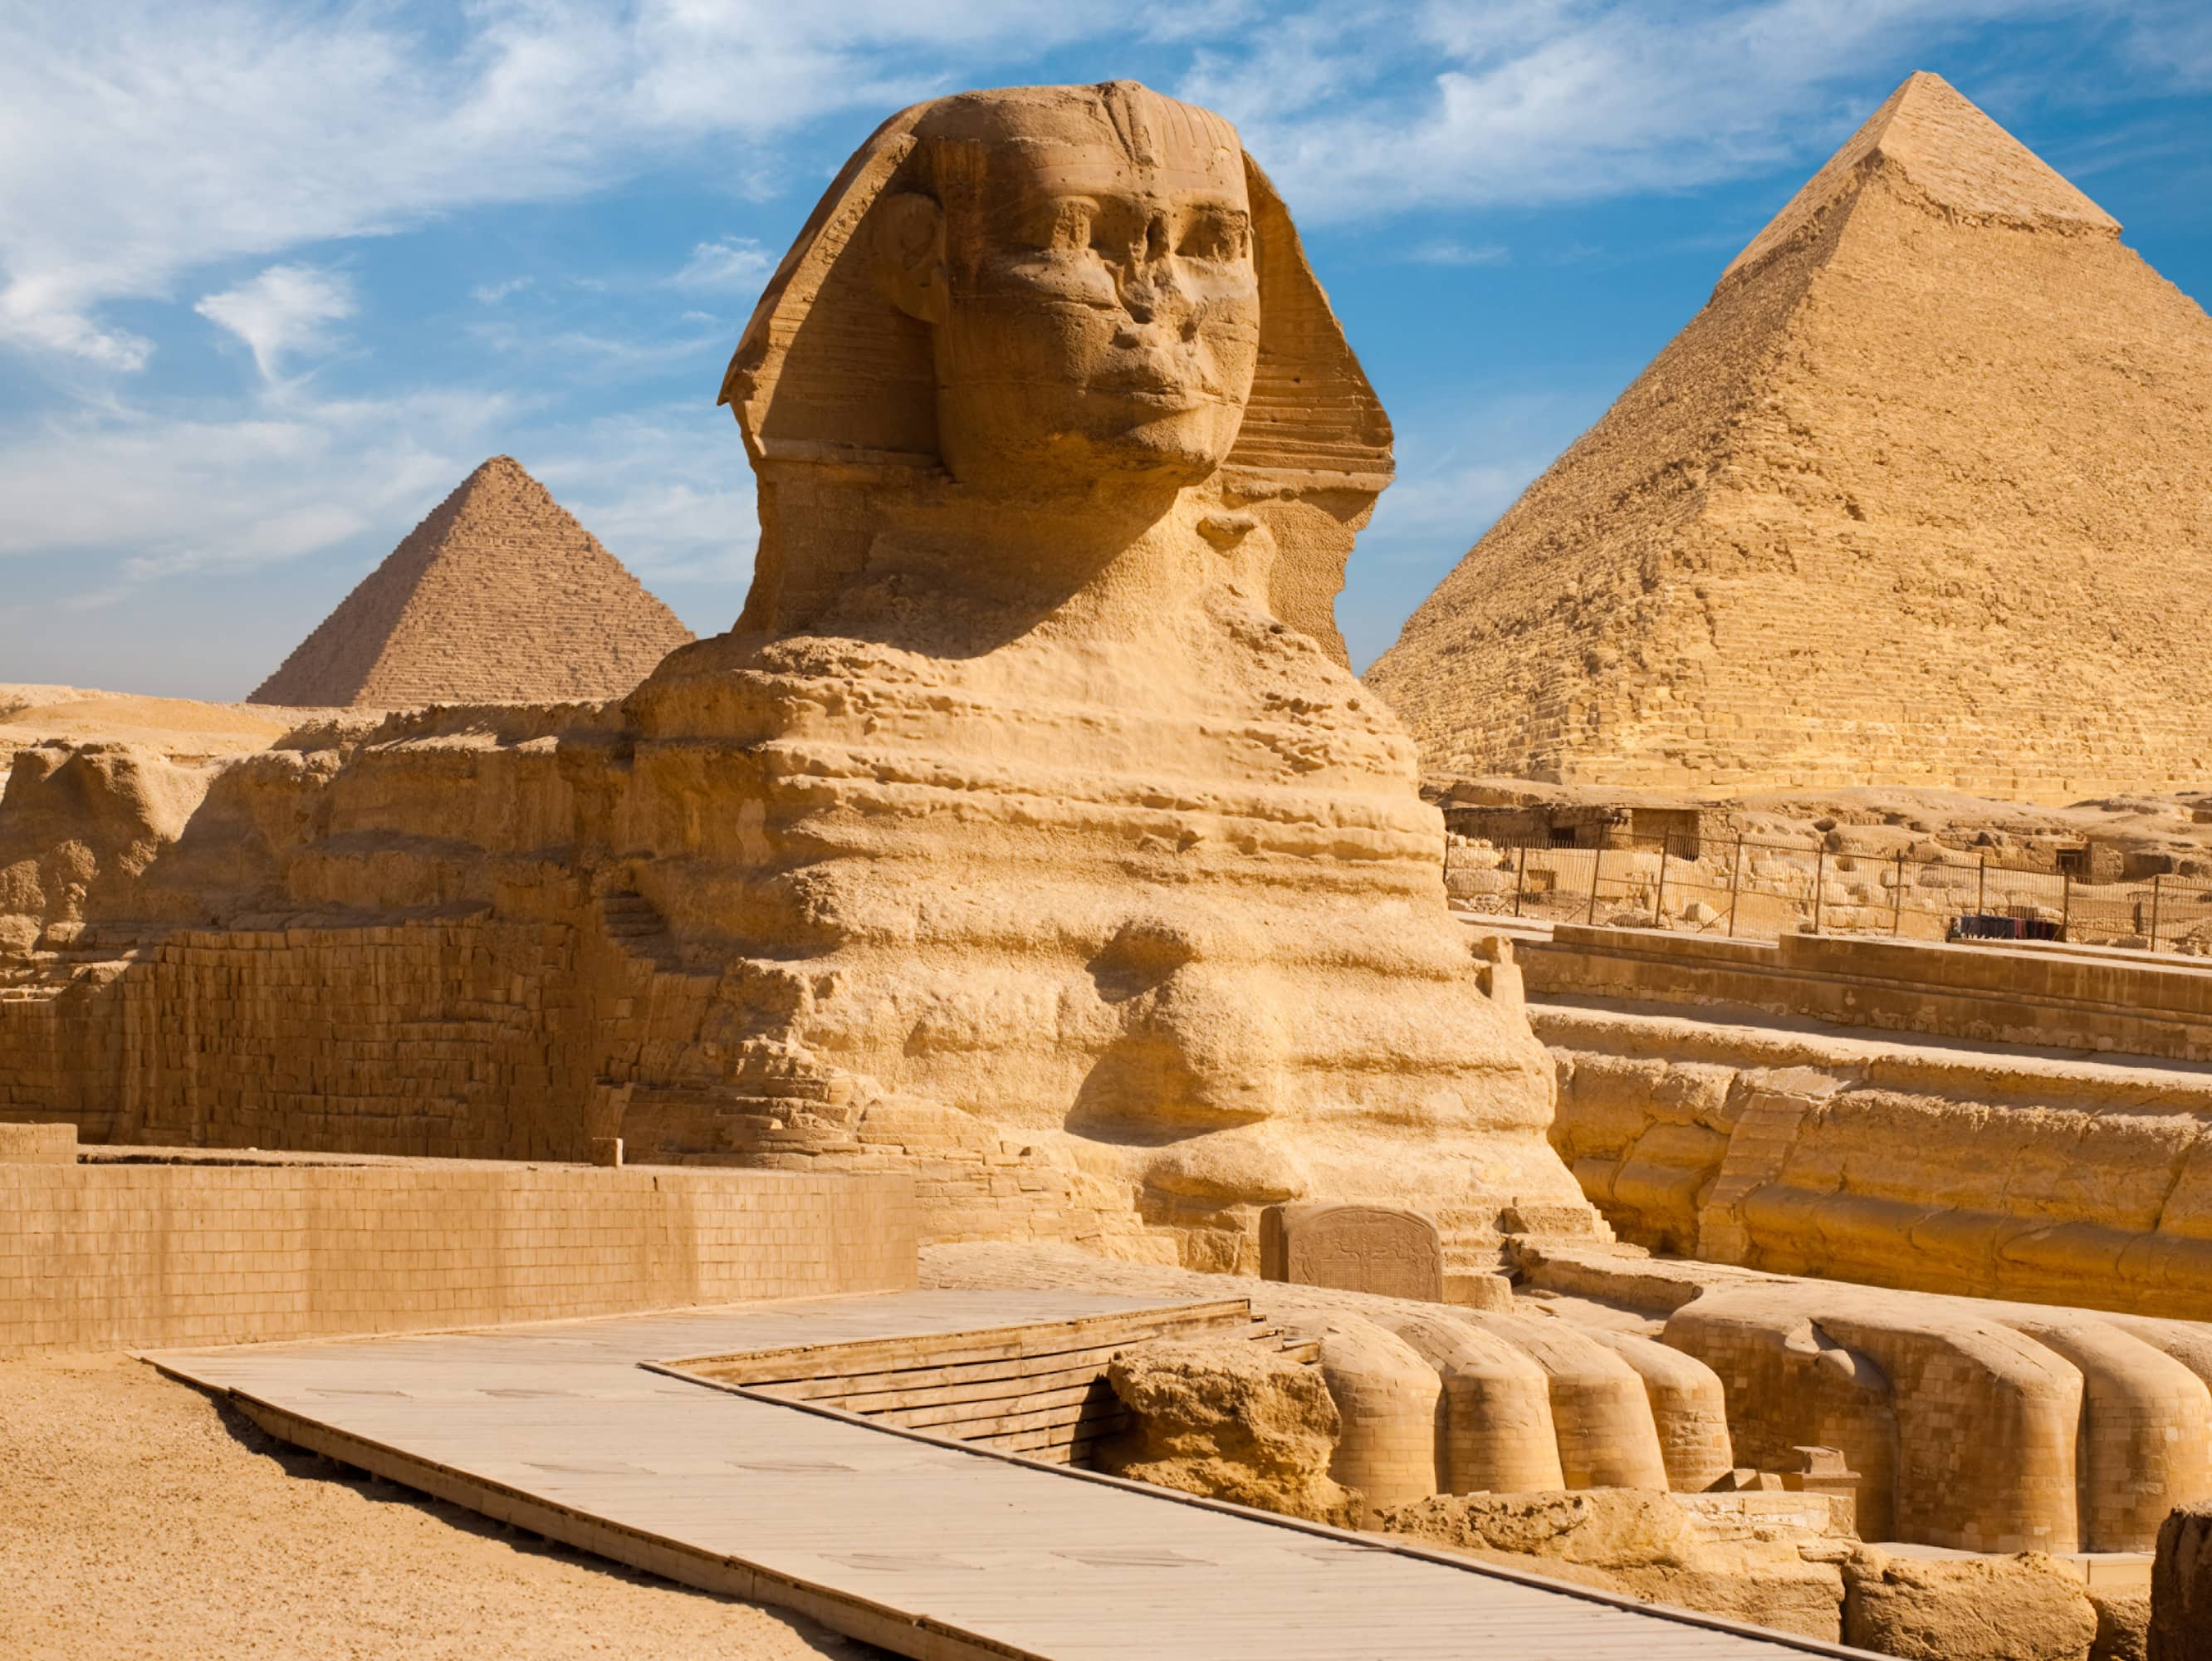 GAZE UP AT THE ENIGMATIC SPHINX